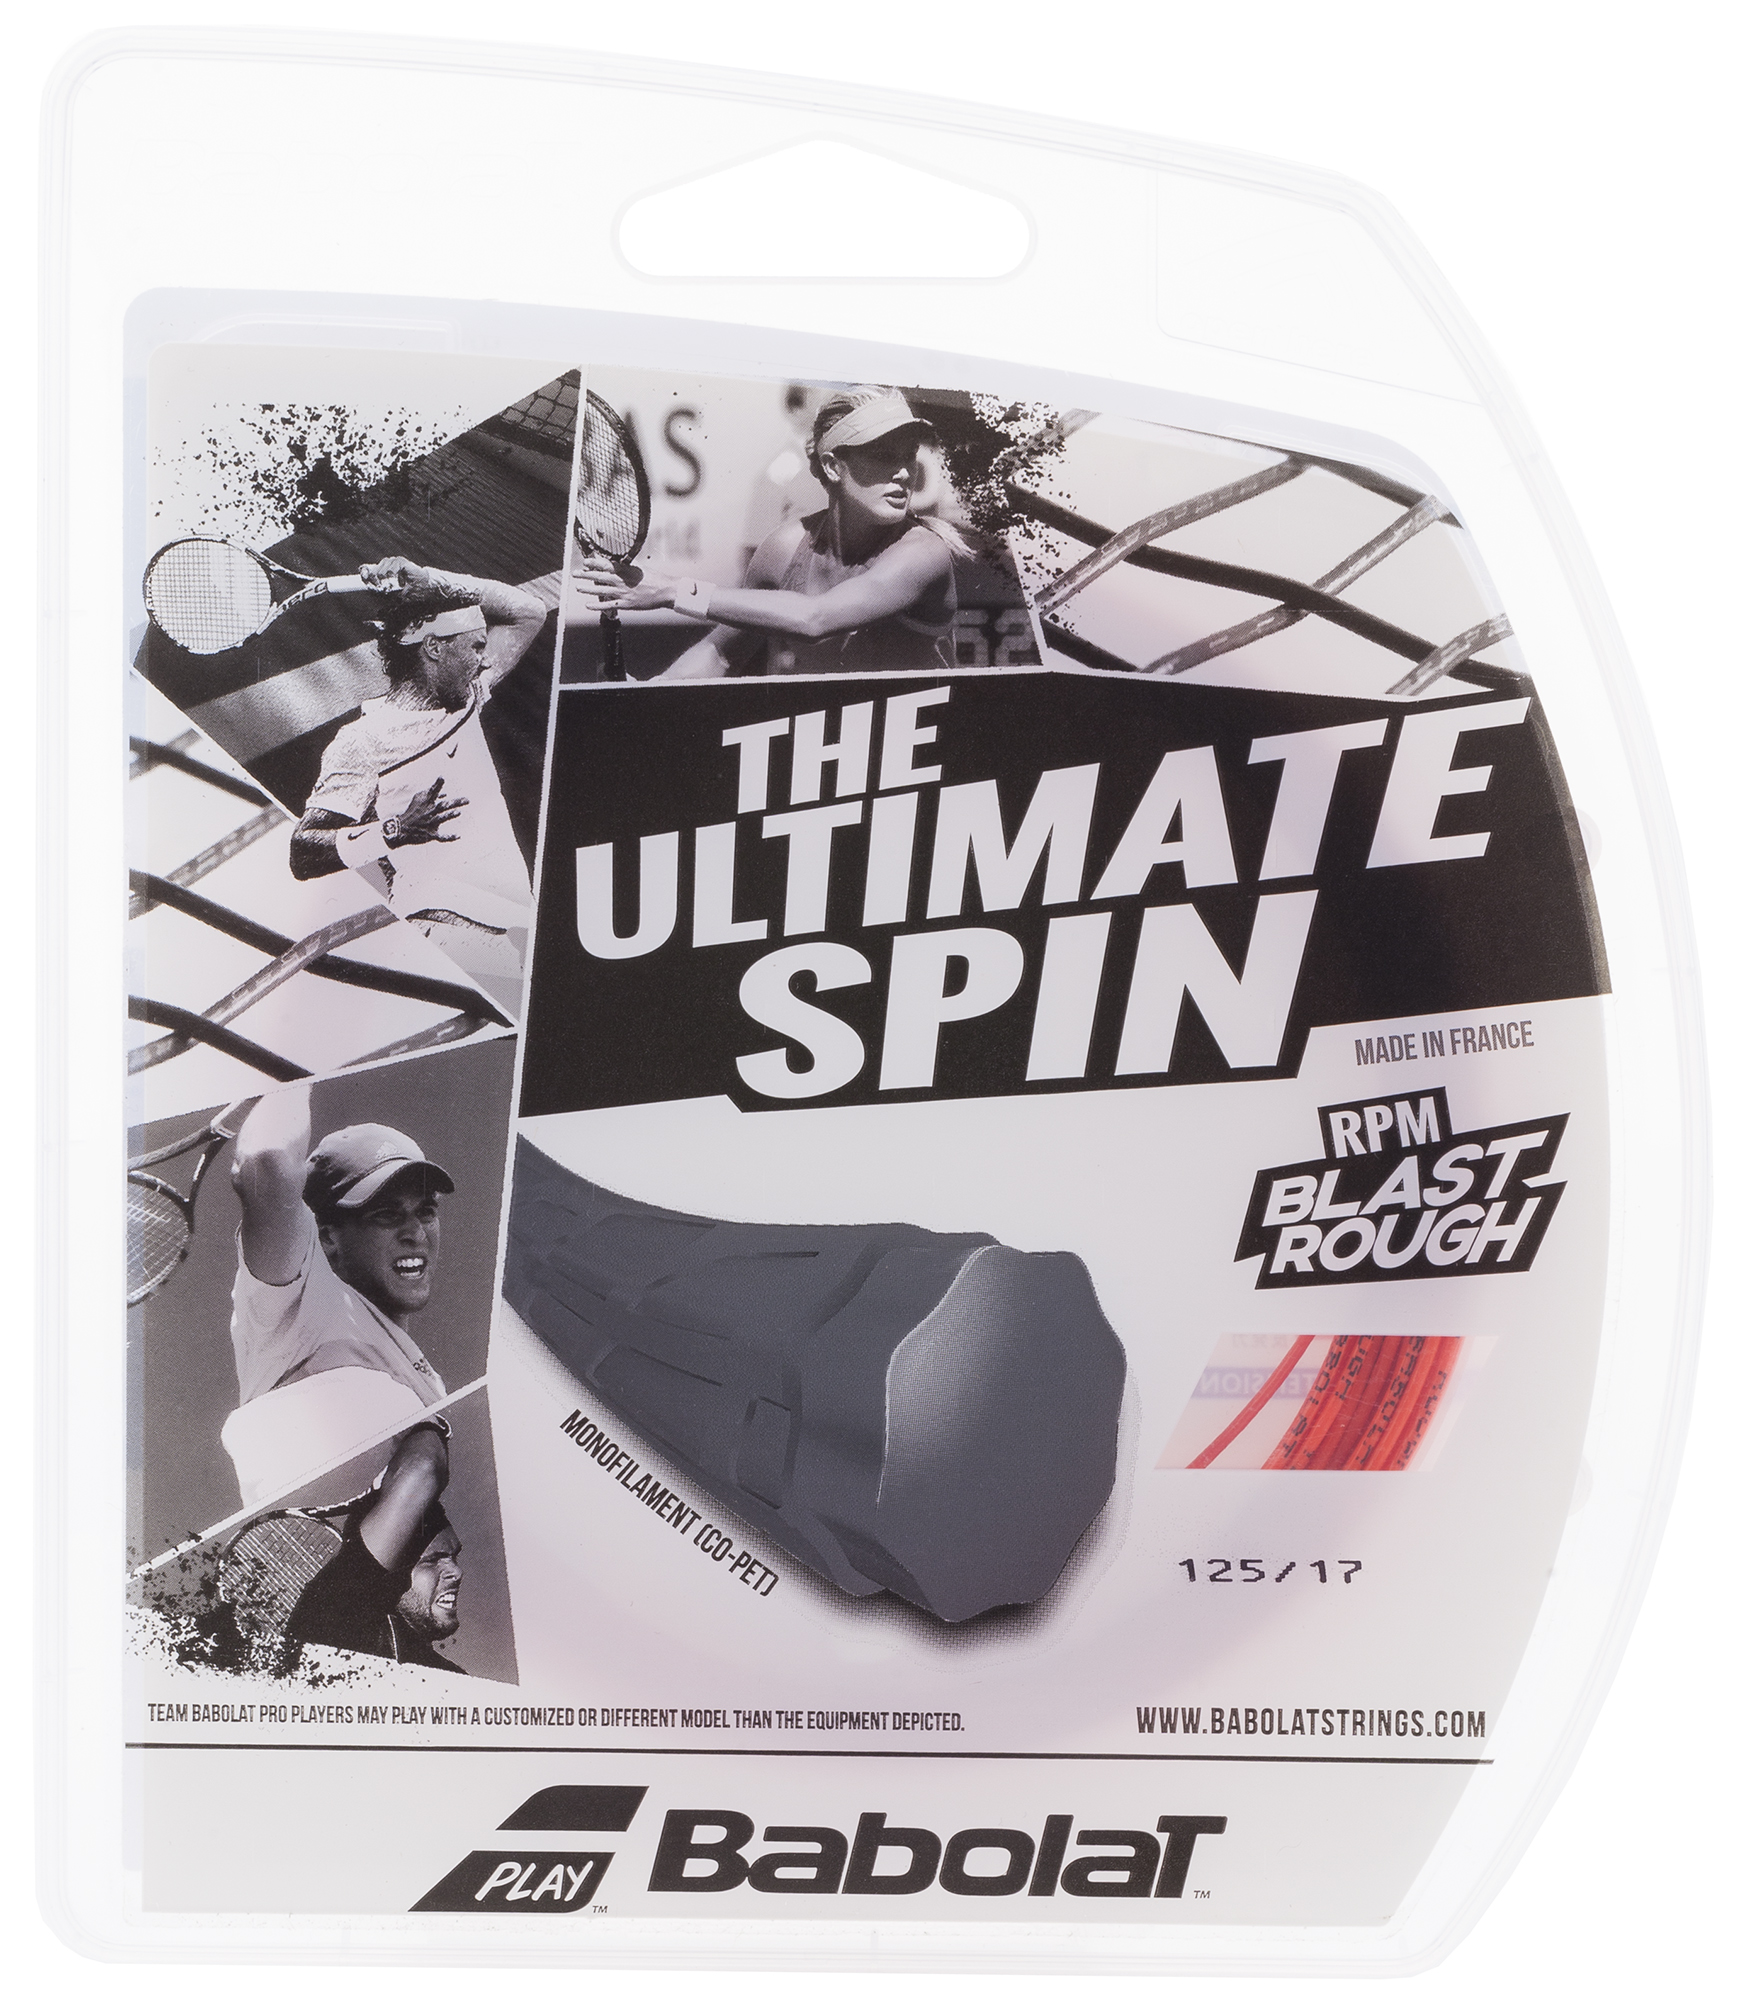 Babolat Струна Rpm Blast Rough